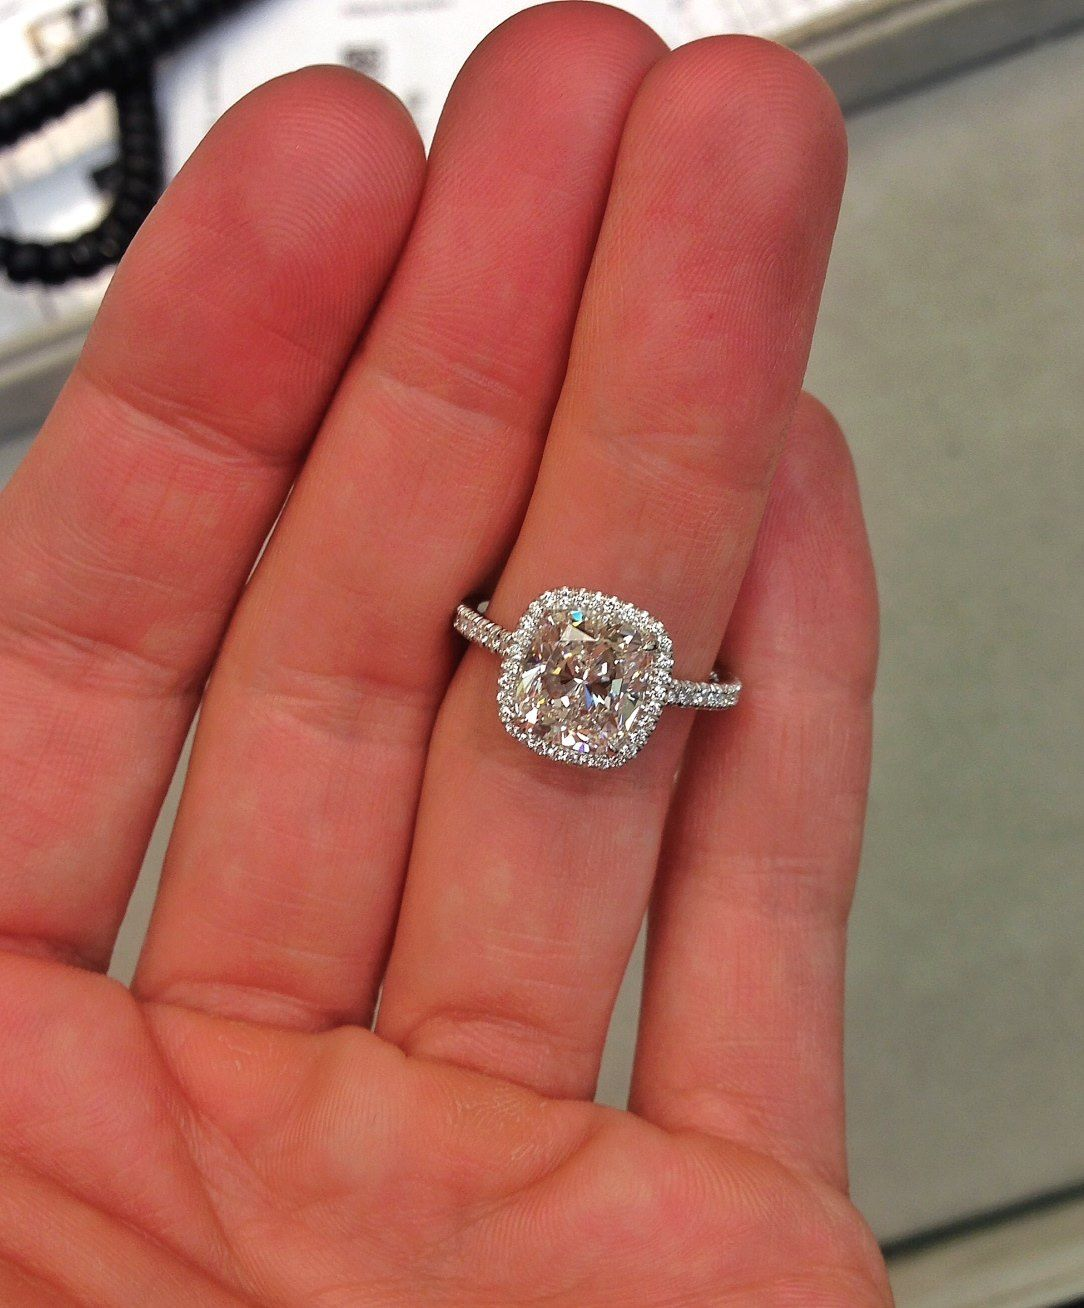 This Engagement Ring Is Pure Perfection Simple Classic And A